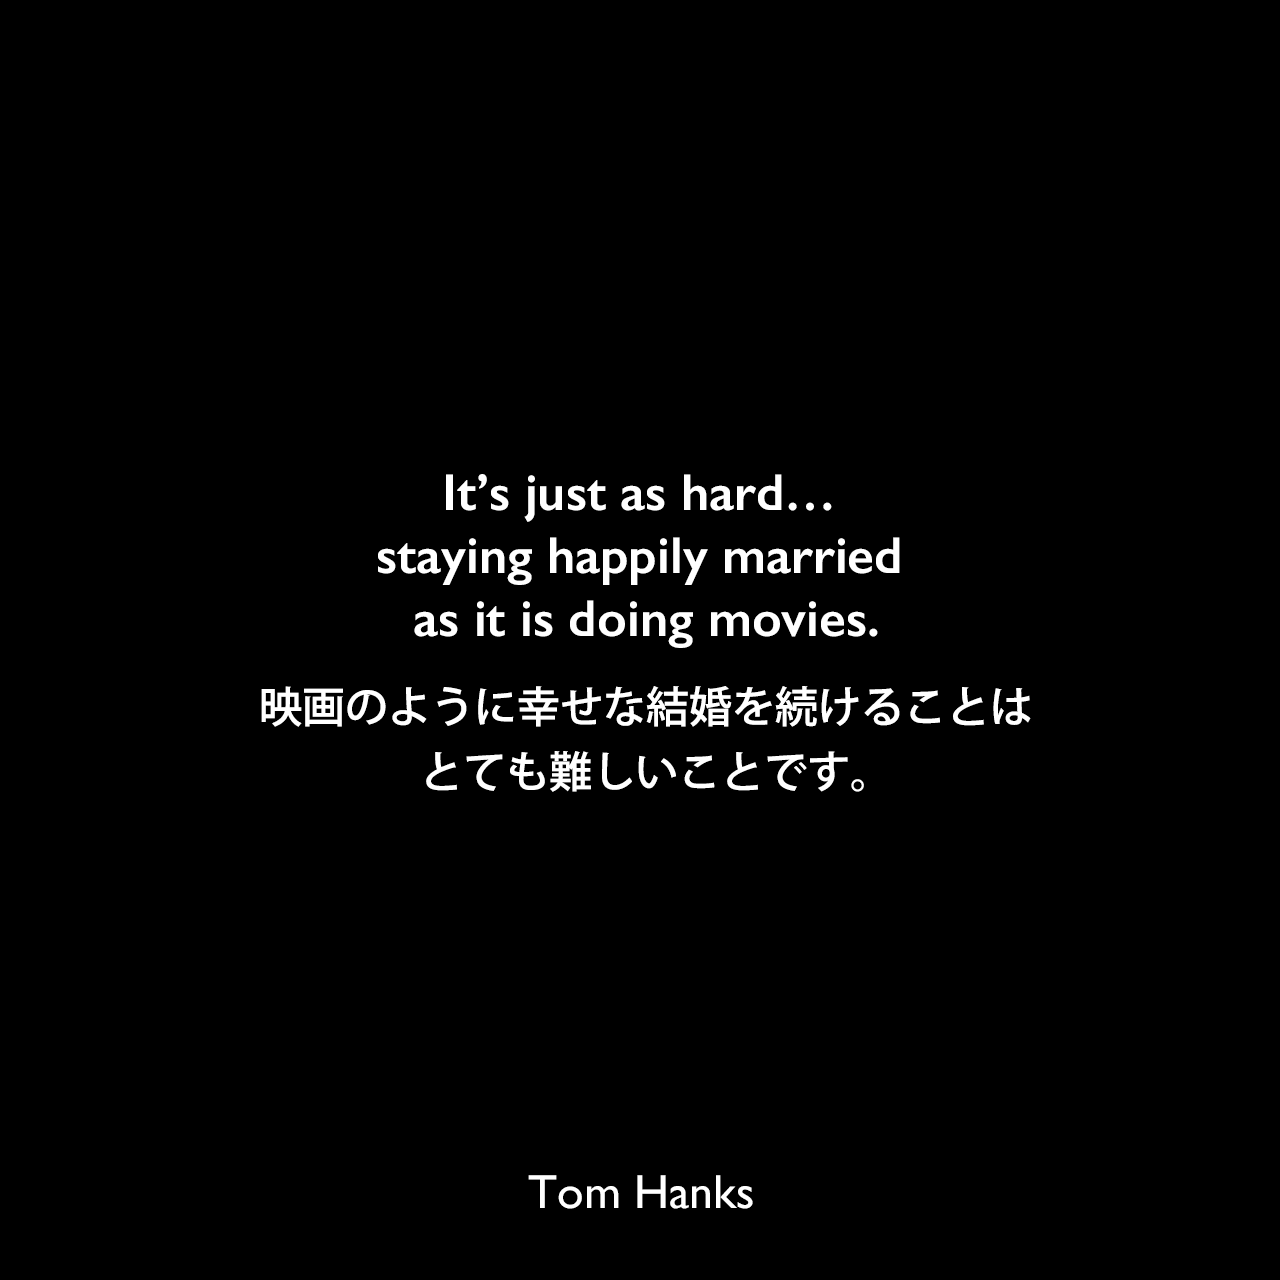 It's just as hard… staying happily married as it is doing movies.映画のように幸せな結婚を続けることはとても難しいことです。